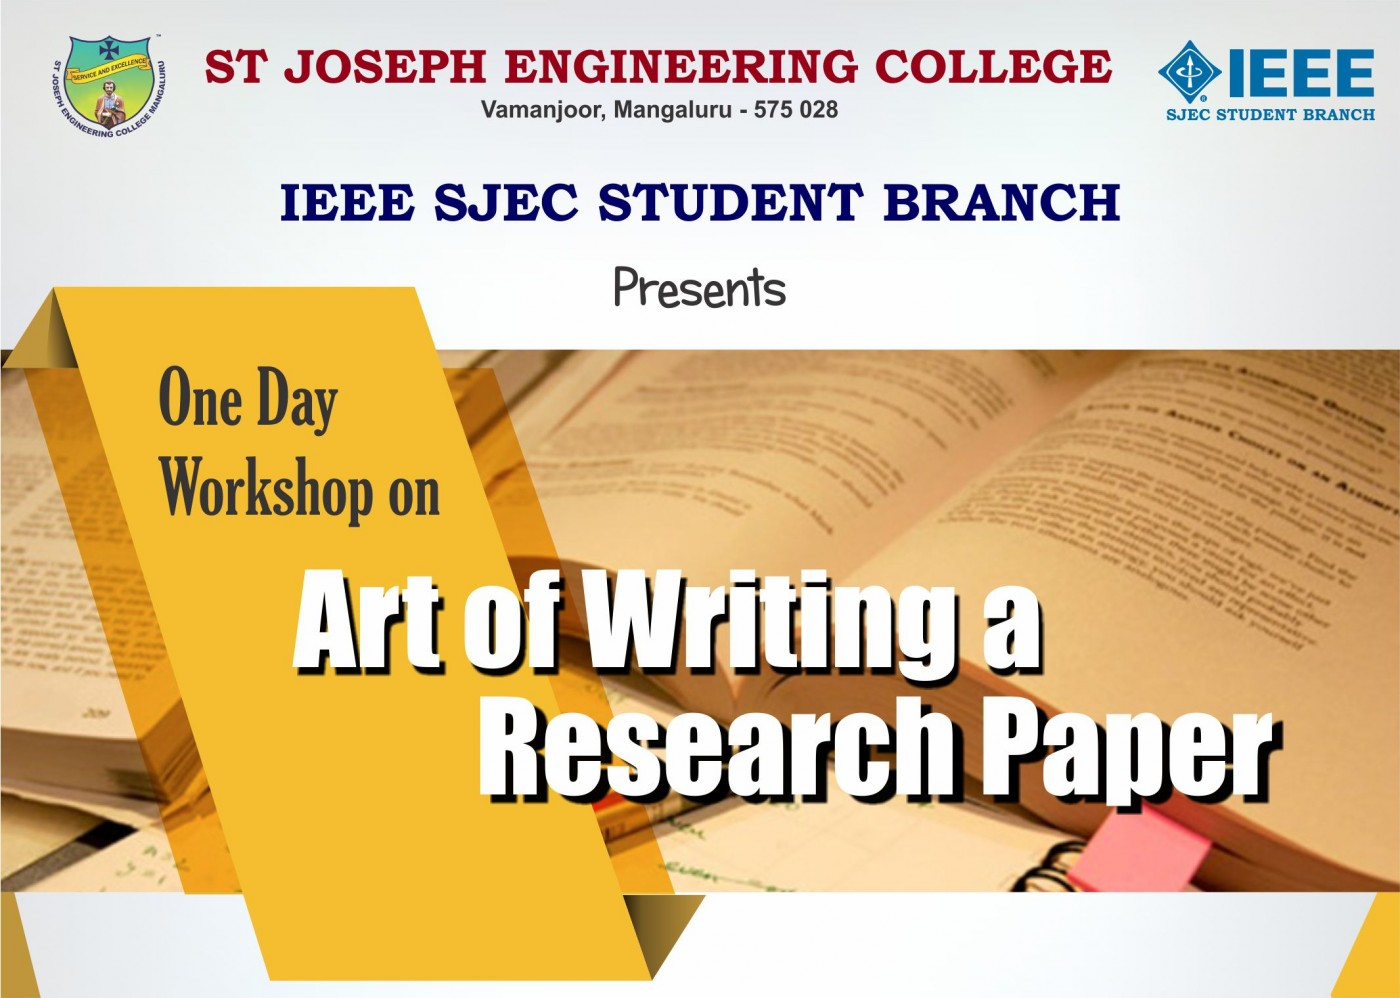 011 Workshop Banner Research Paper Striking Writing Papers Lester 16th Edition A Complete Guide James D. 1400